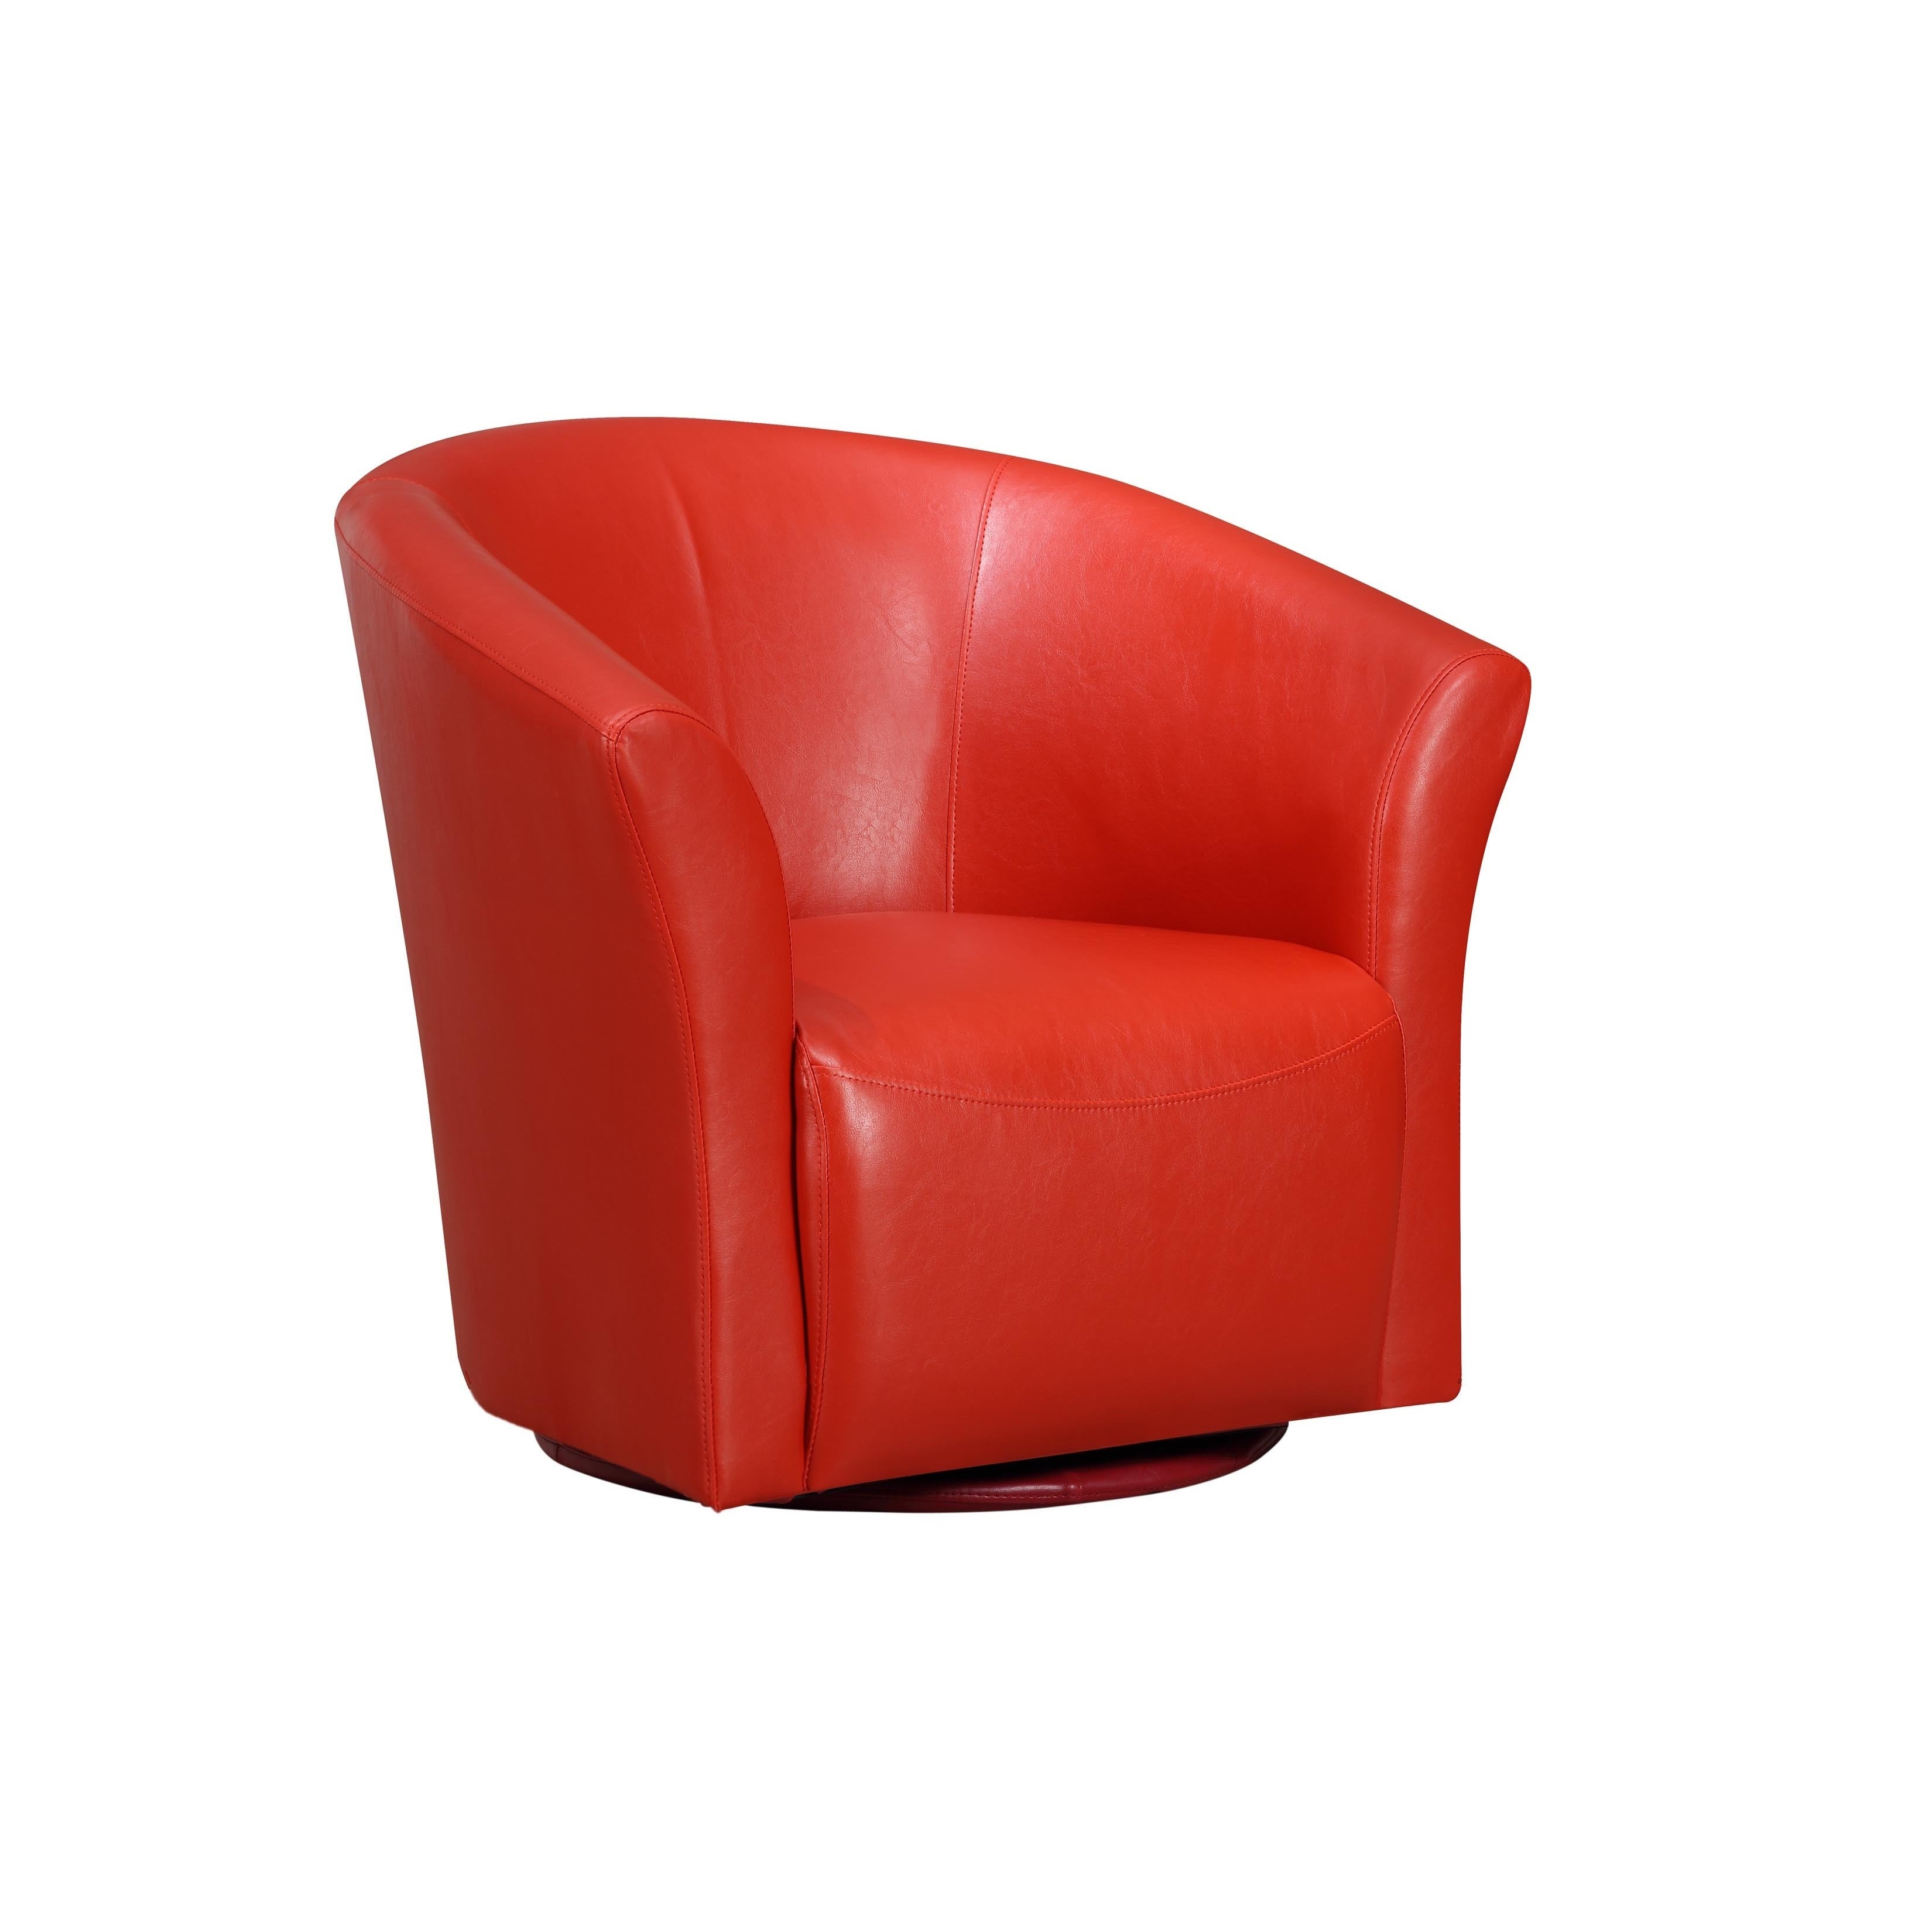 Attirant Shop Picket House Radford Swivel Chair Riviera 6273 Red   Free Shipping  Today   Overstock.com   12853008